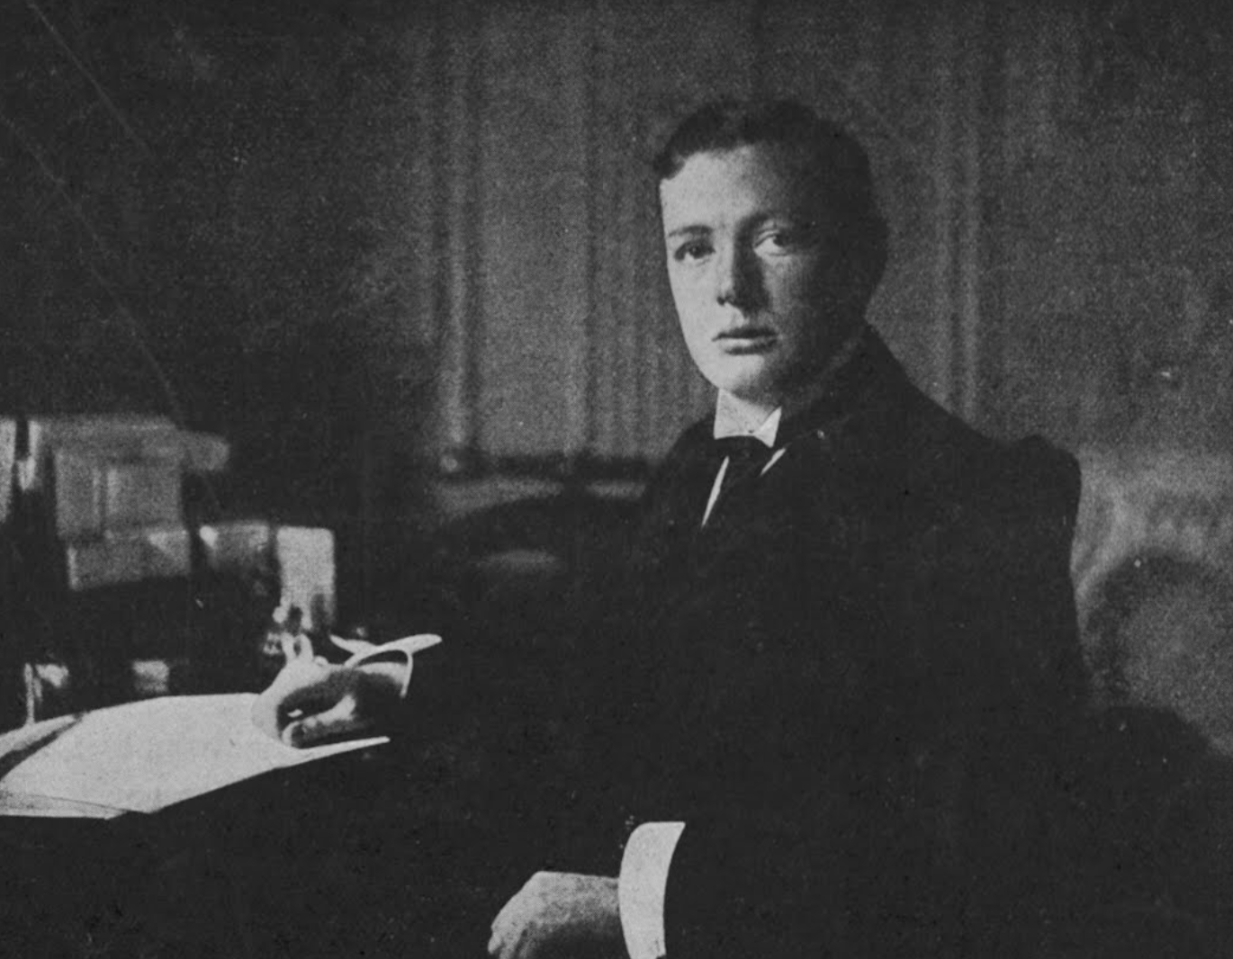 In the office, 1911